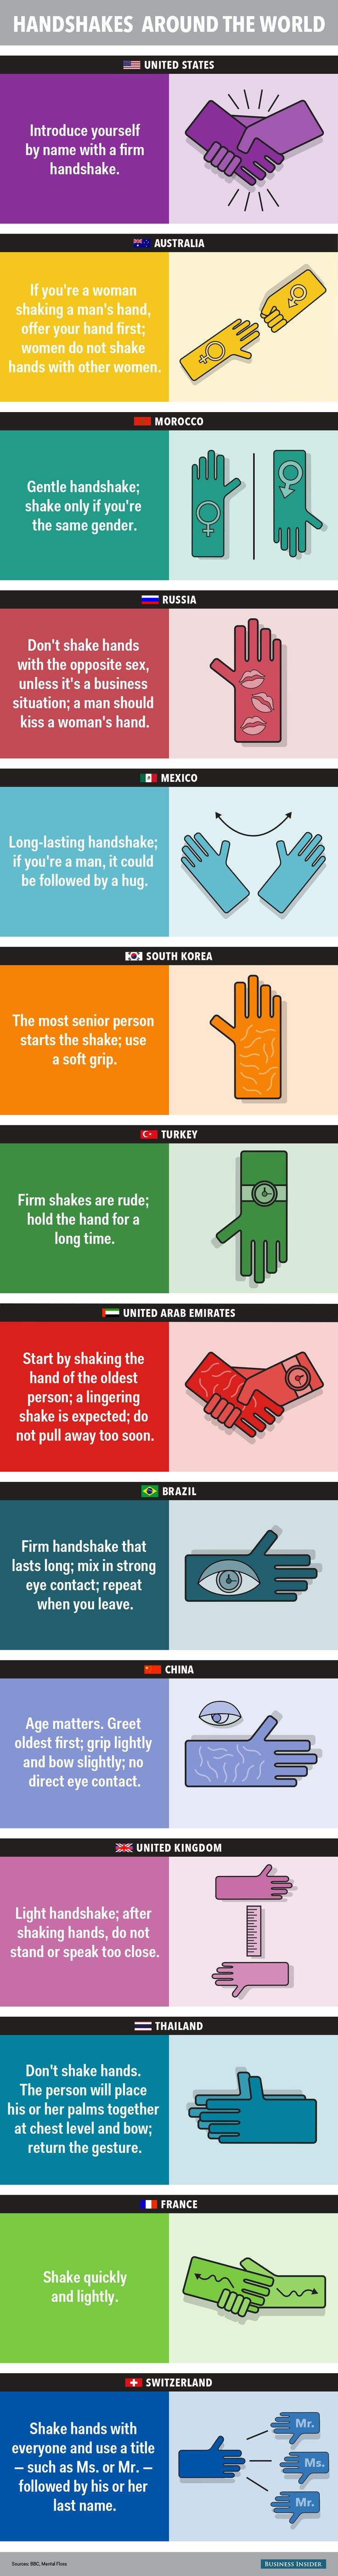 Here's how to properly shake hands in 14 different countries   Read more: http://www.businessinsider.com/how-to-properly-shake-hands-around-the-world-2015-3#ixzz3TXN4AOPU